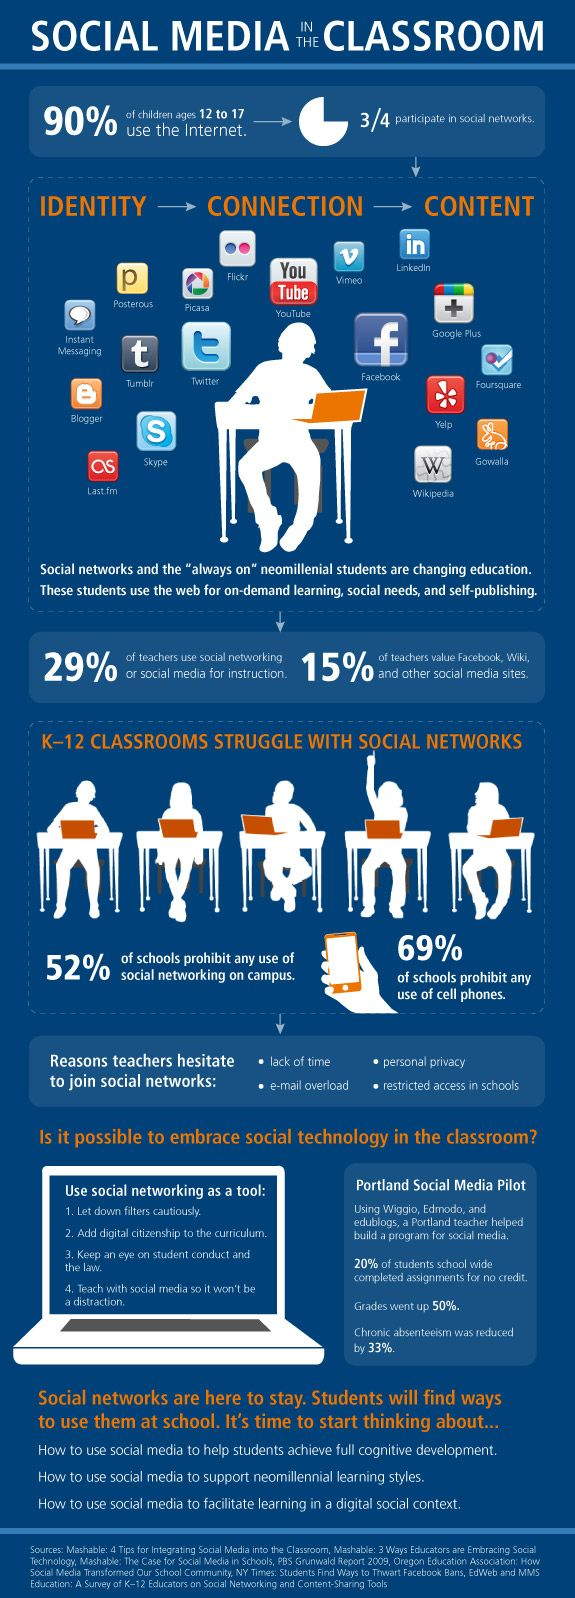 Although adoption is slow (for instance, only 15% of teachers find value in Facebook, Wiki, and other social networks), time will only show that it will rise. Interestingly though, about one third of teachers surveyed for this infographic say they use social networking or social media for their instruction.